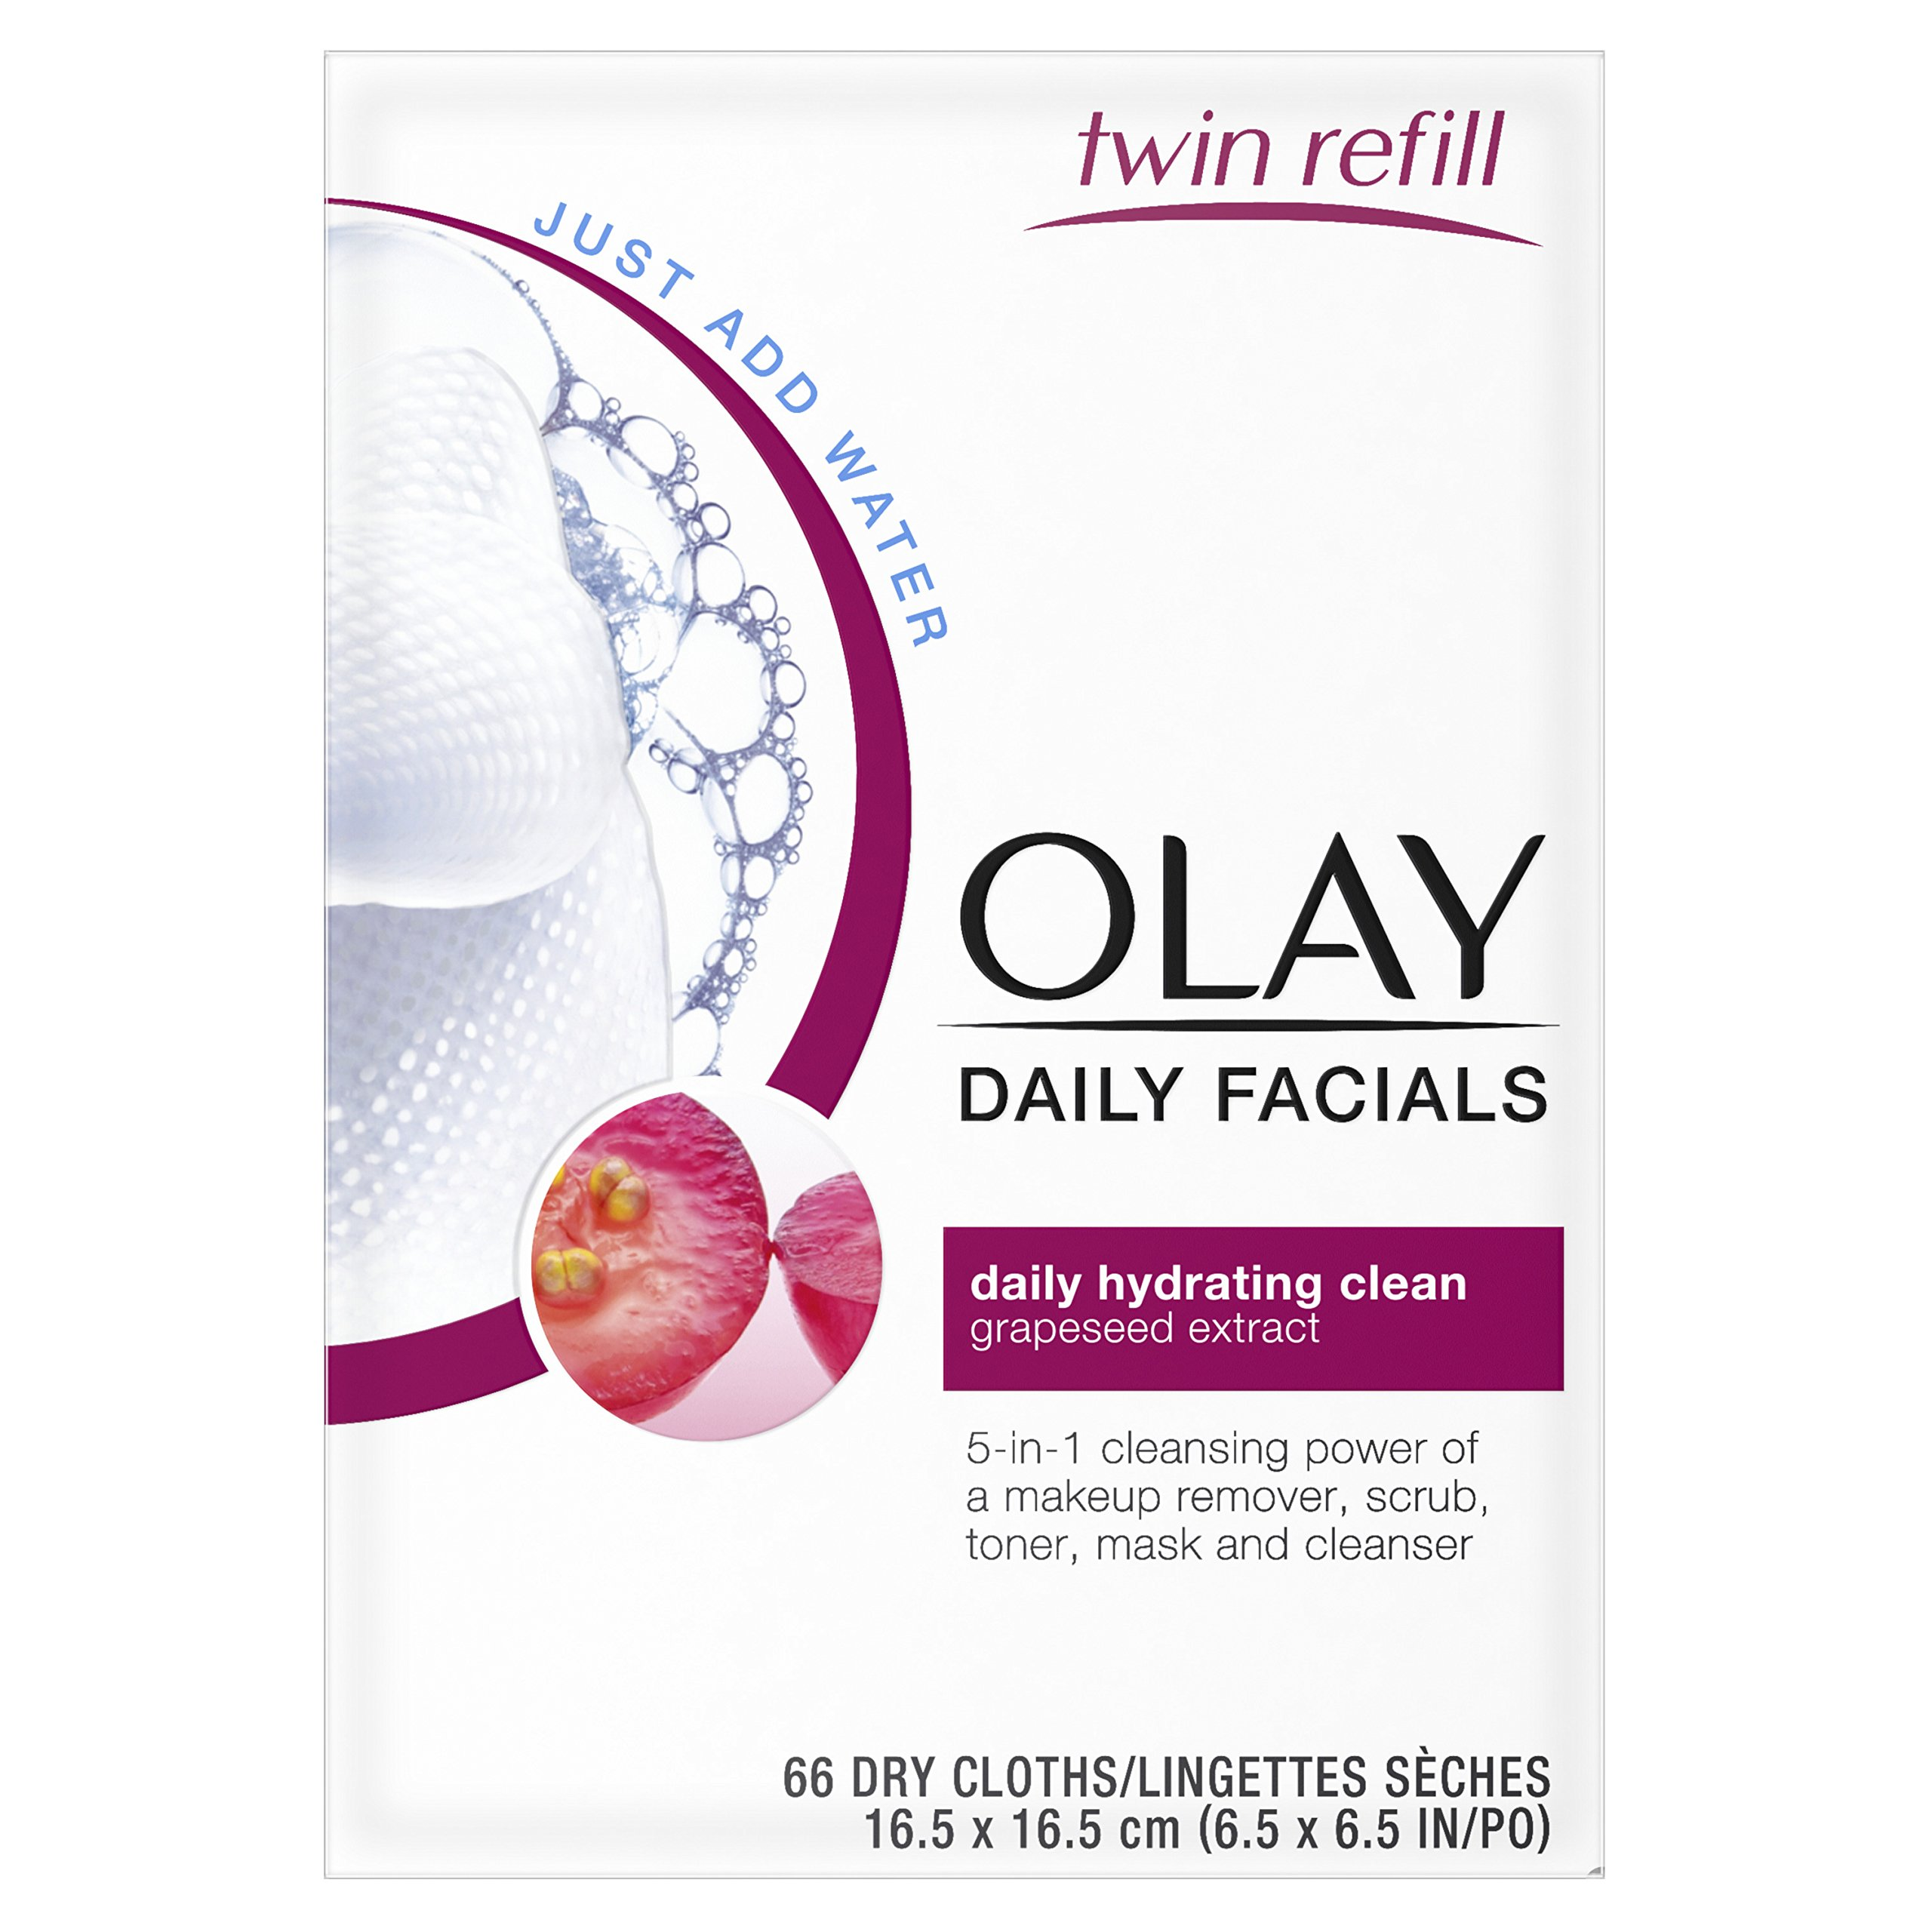 Olay Daily Facials, Daily Clean Makeup Removing Facial Wipes, 5-in-1 Water Activated Cloths, 66 count by Olay